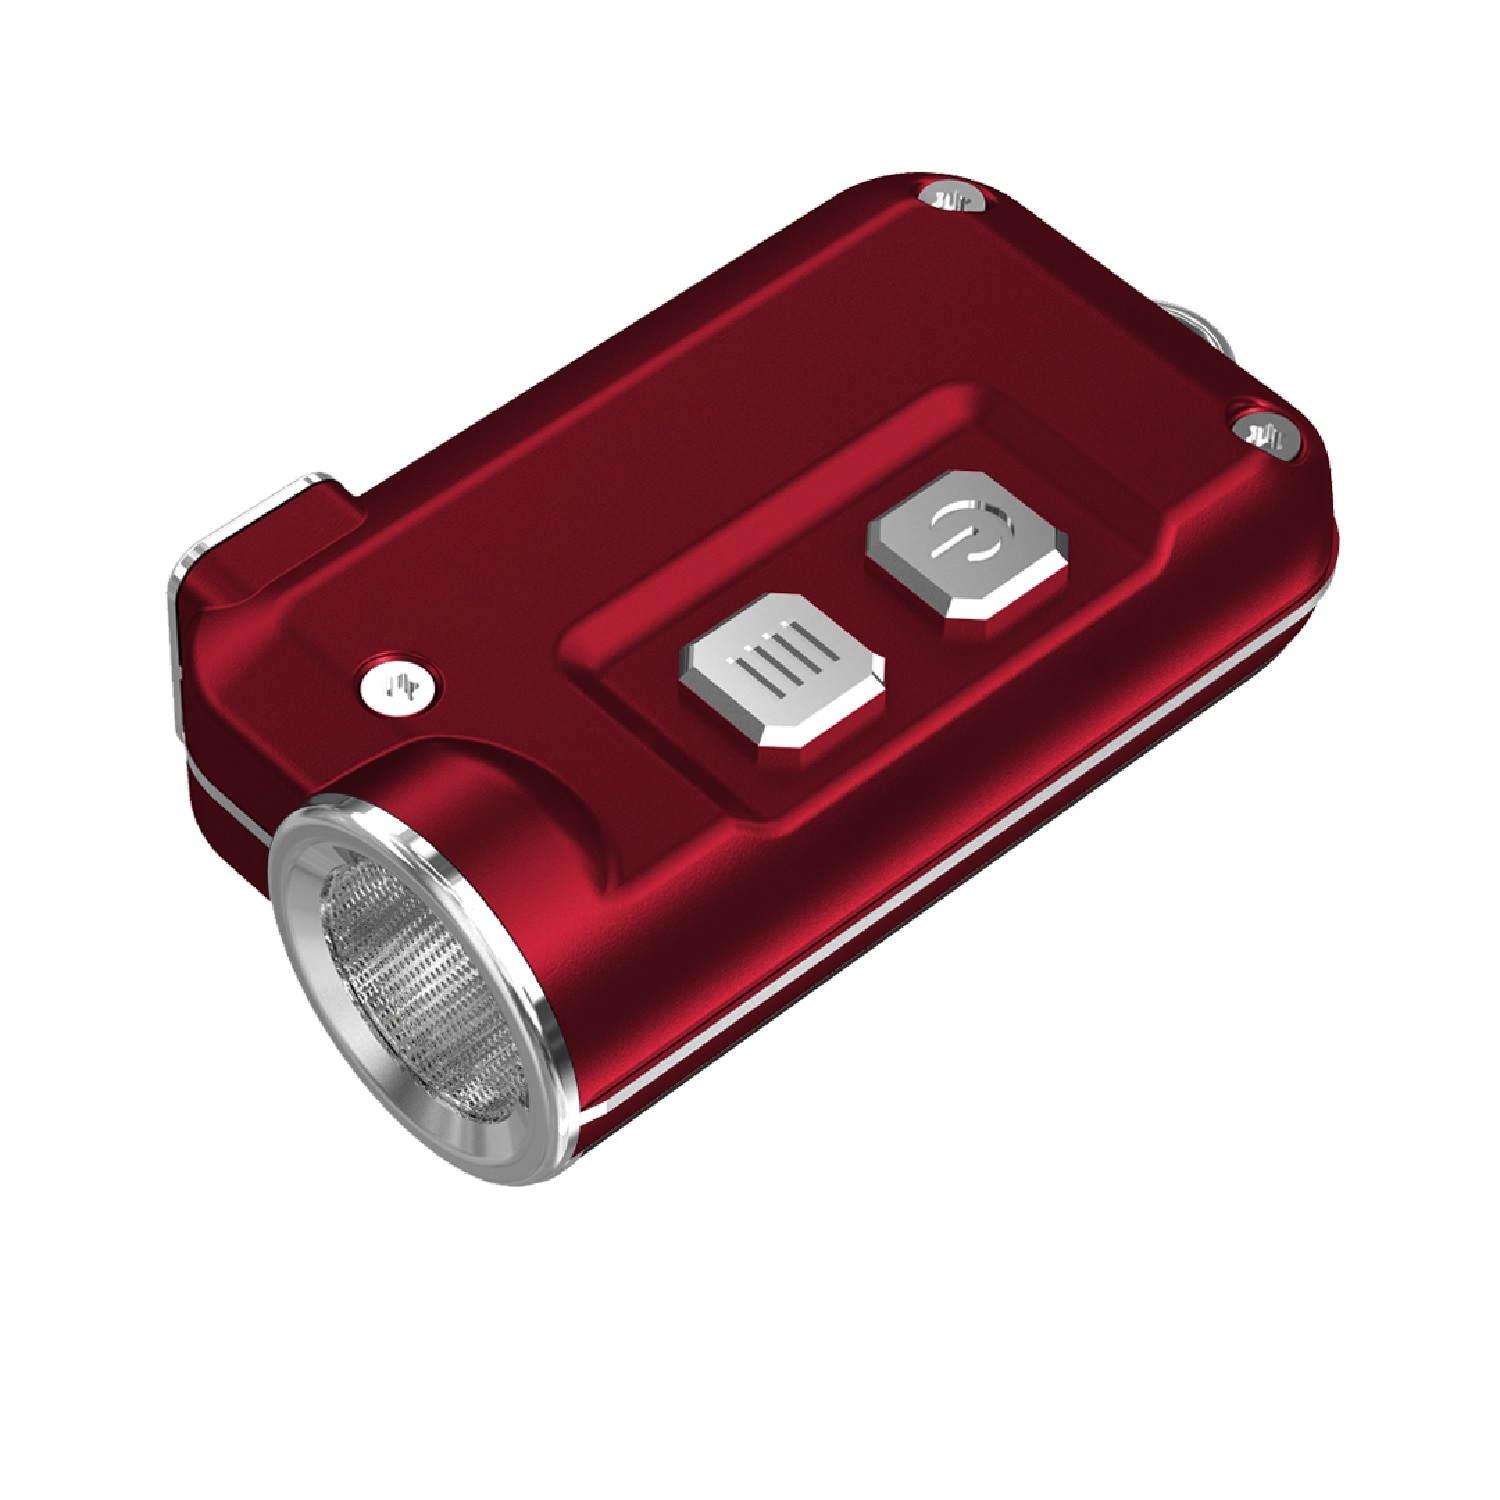 Nitecore TINI 380 Lumen USB RCHRGBL LED Keychain Light Red